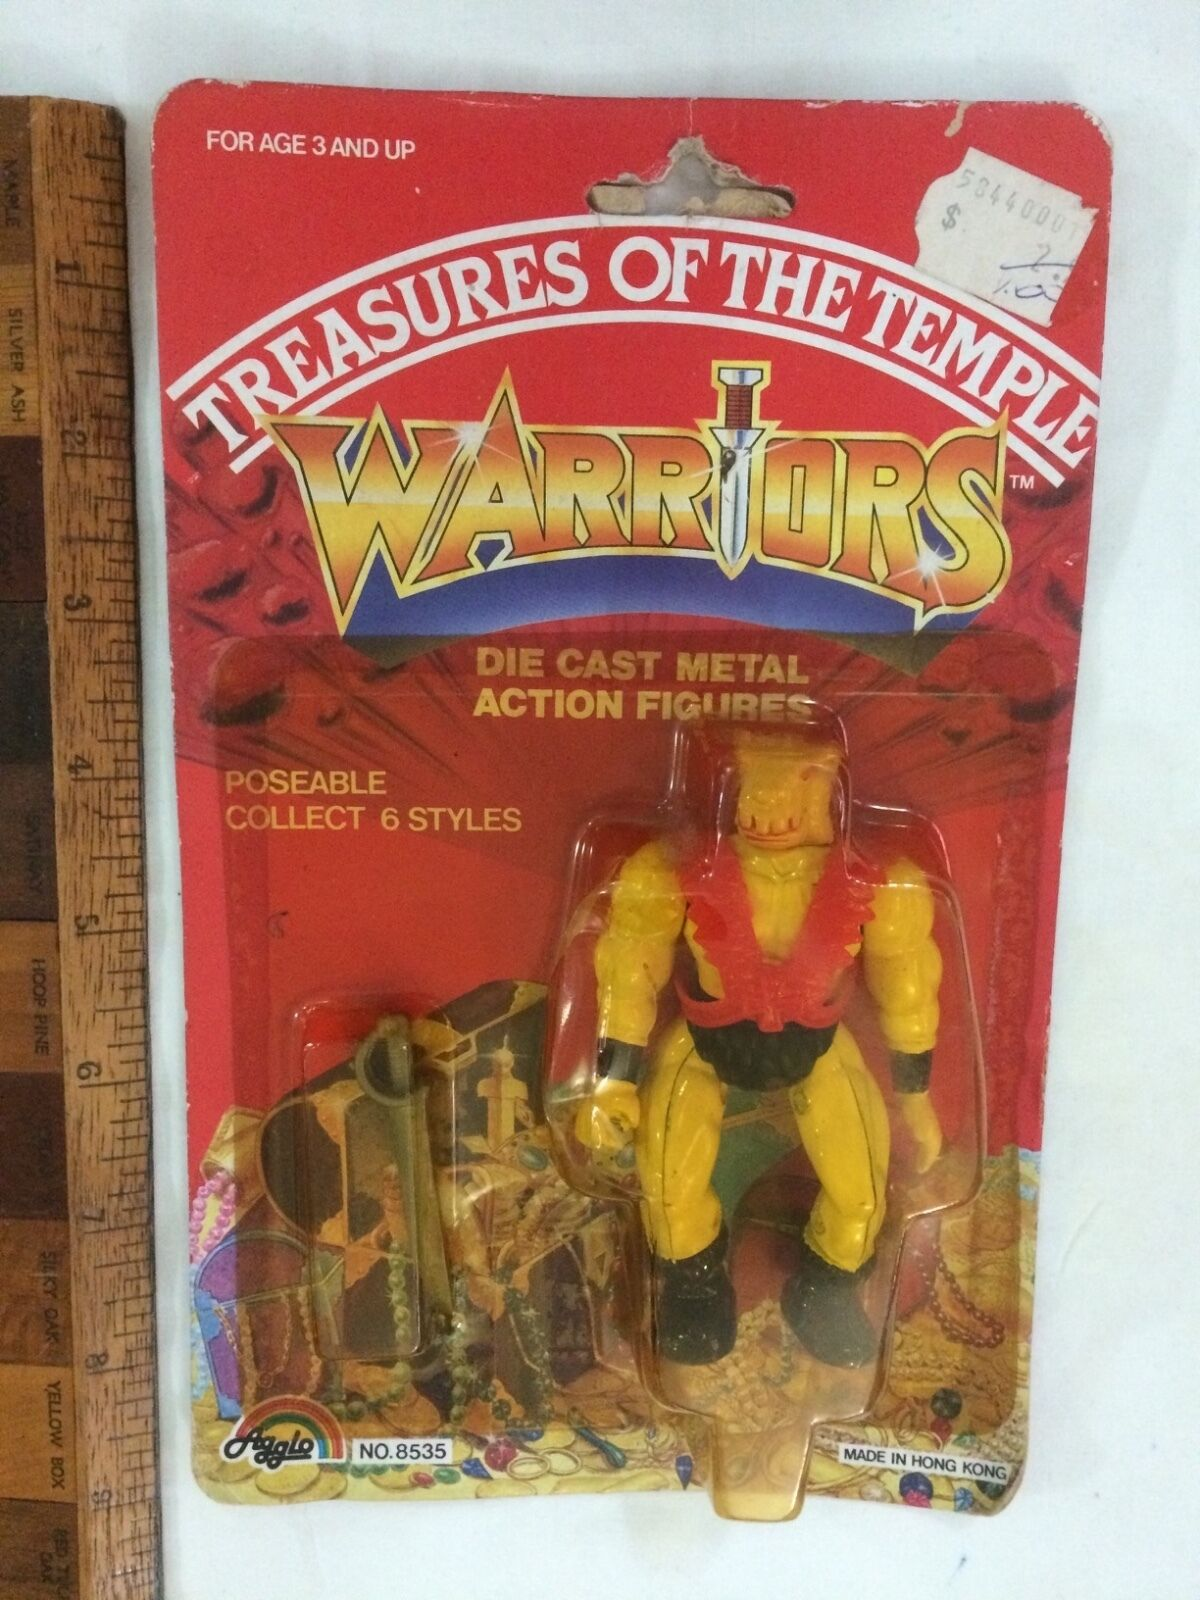 DIE-CAST TREASURES OF THE TEMPLE MOTU KO WARRIORS ACTION FIGURE AGGLO MOC  1